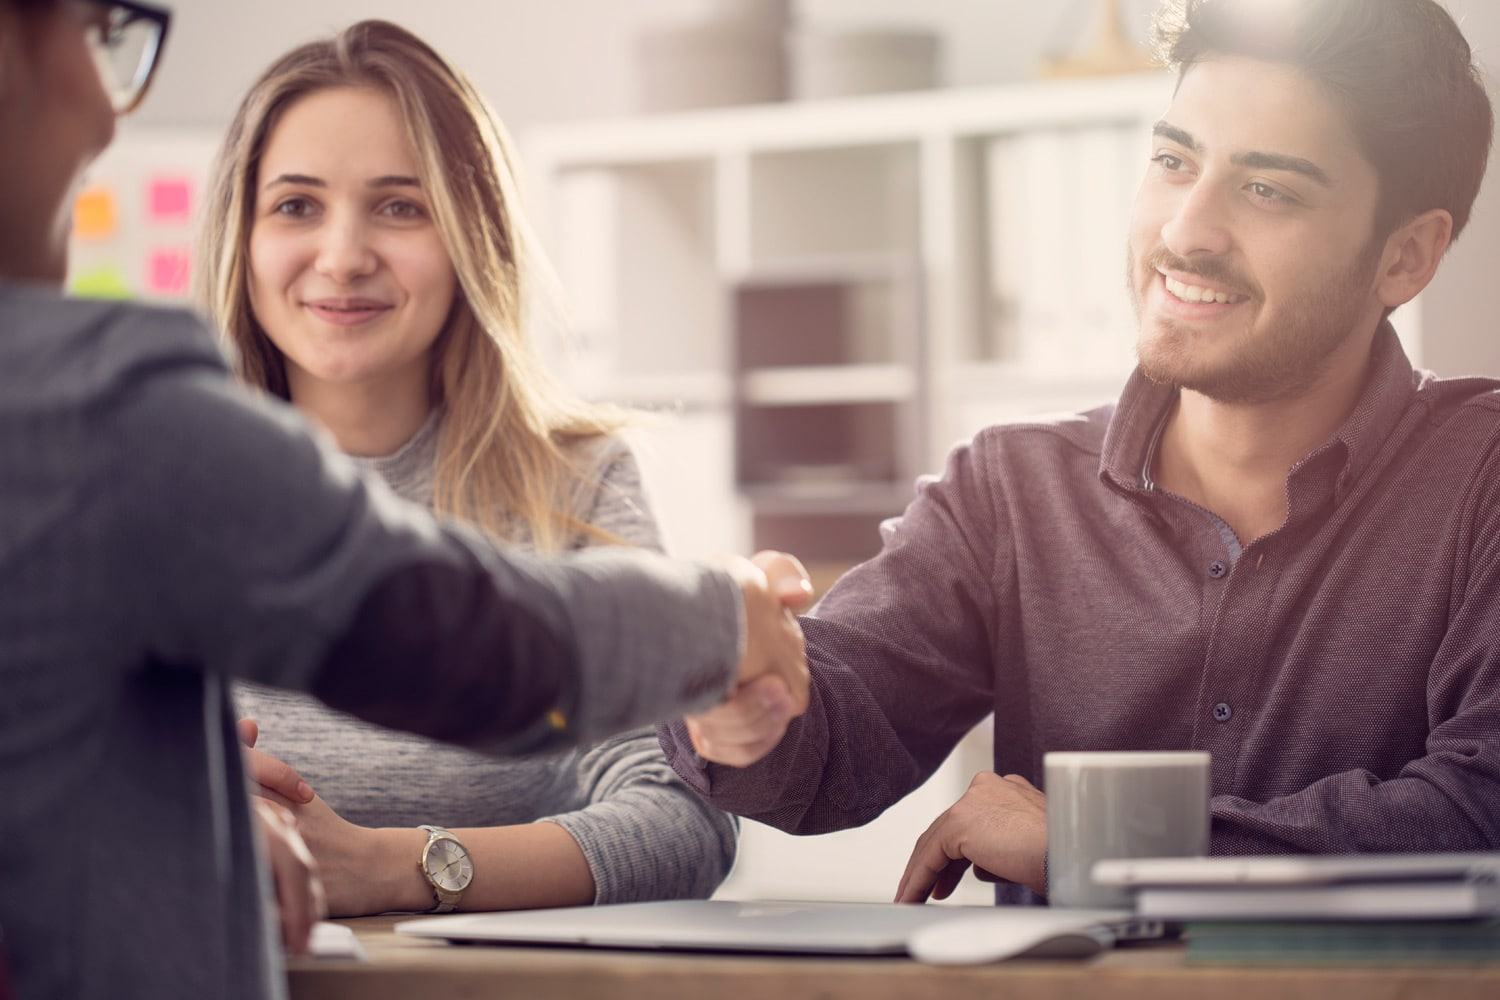 When meeting with your attorney, it's important that you make the best use of your time. Let's show you how to get the most out of this meeting.